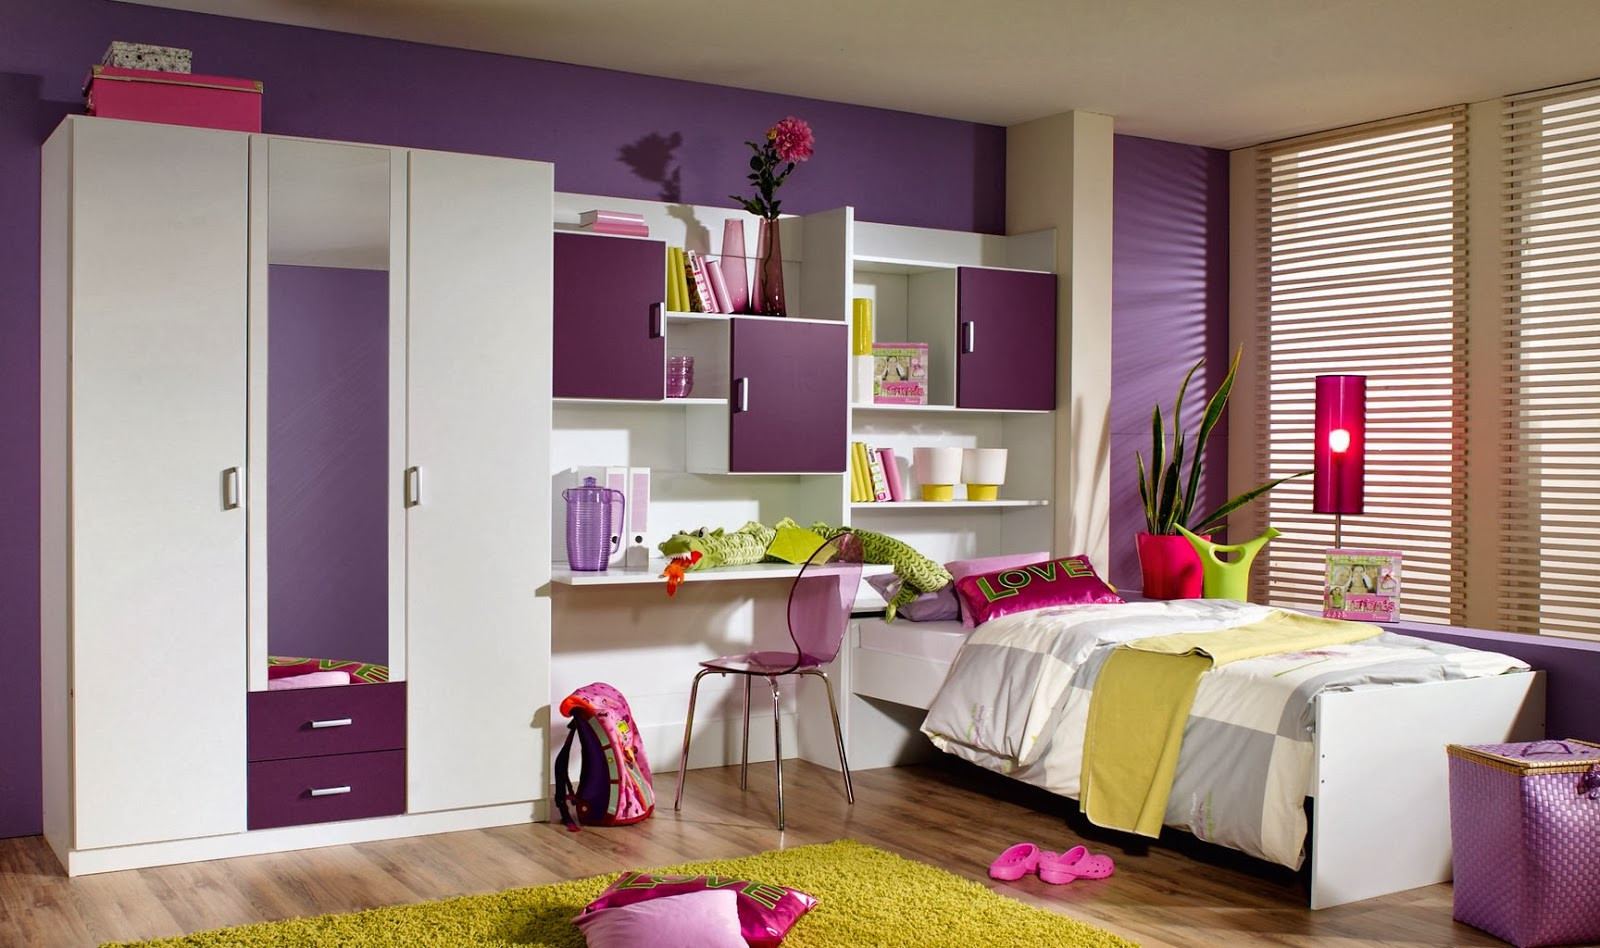 Kids Bedroom Design Reward Your Kids 30 Best Modern Kids Bedroom Design